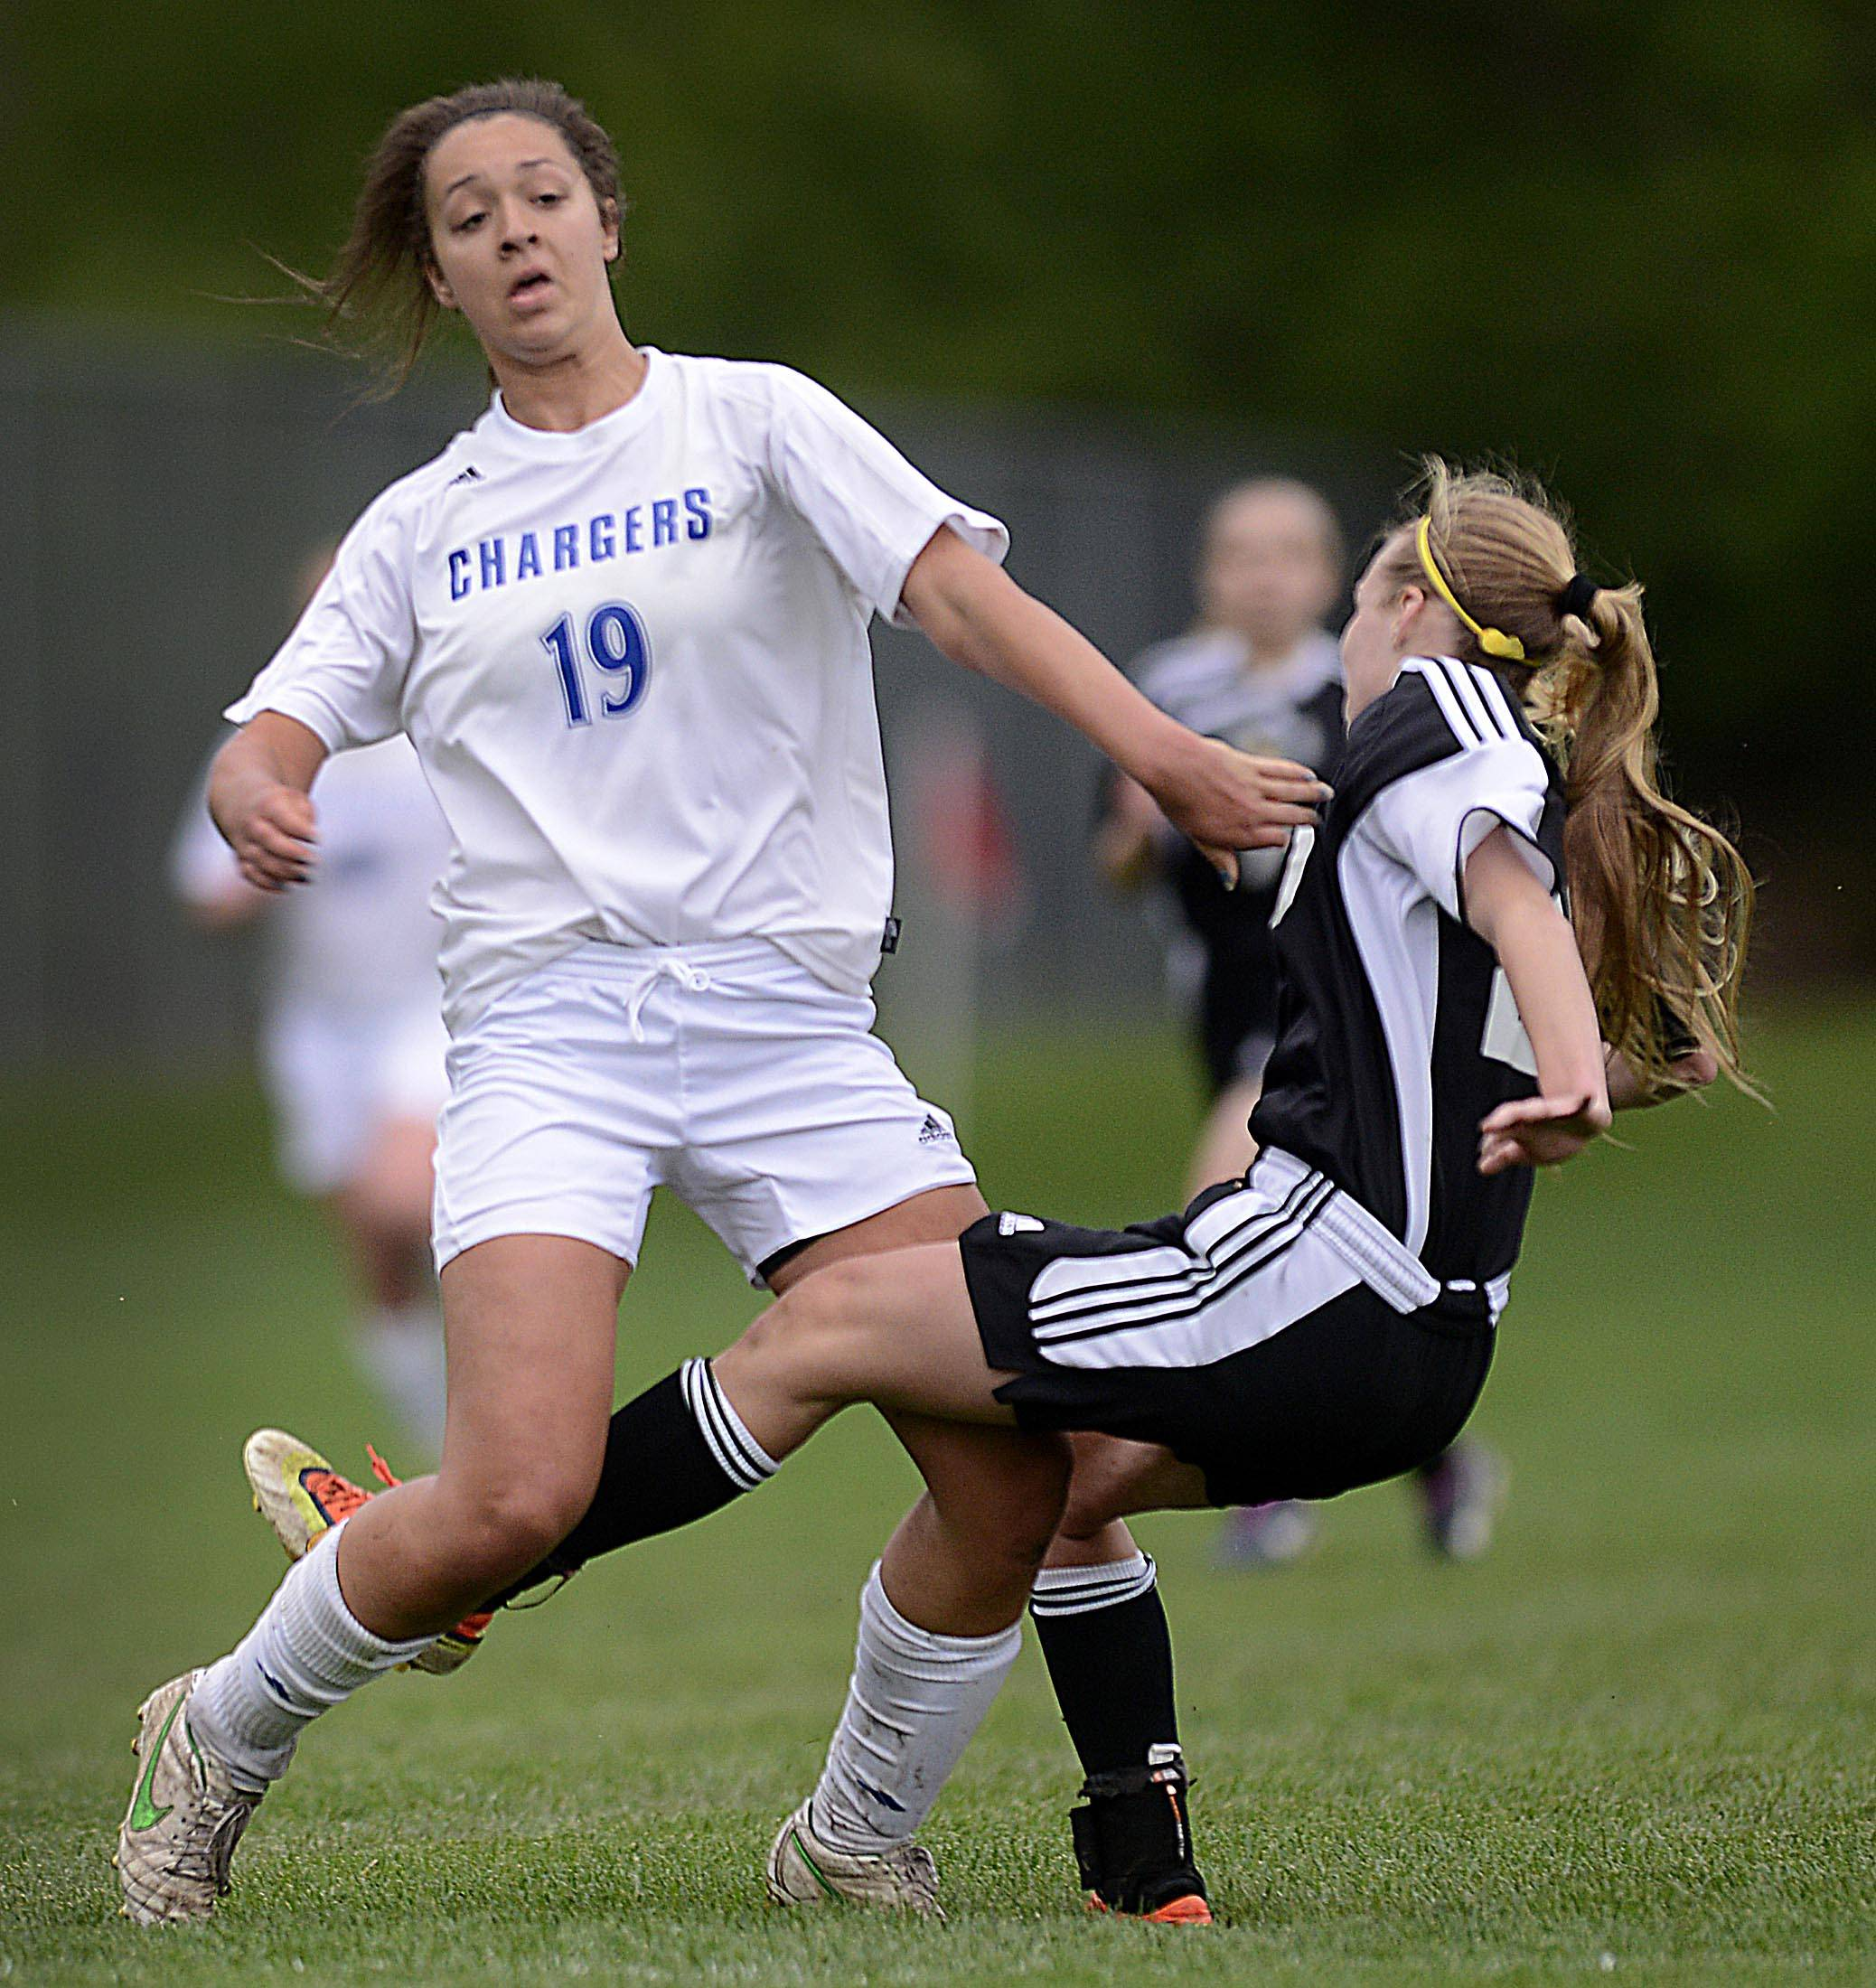 Dundee-Crown's Ashley Raby collides with Jacobs' Heather Hoffmann Tuesday in Carpentersville.